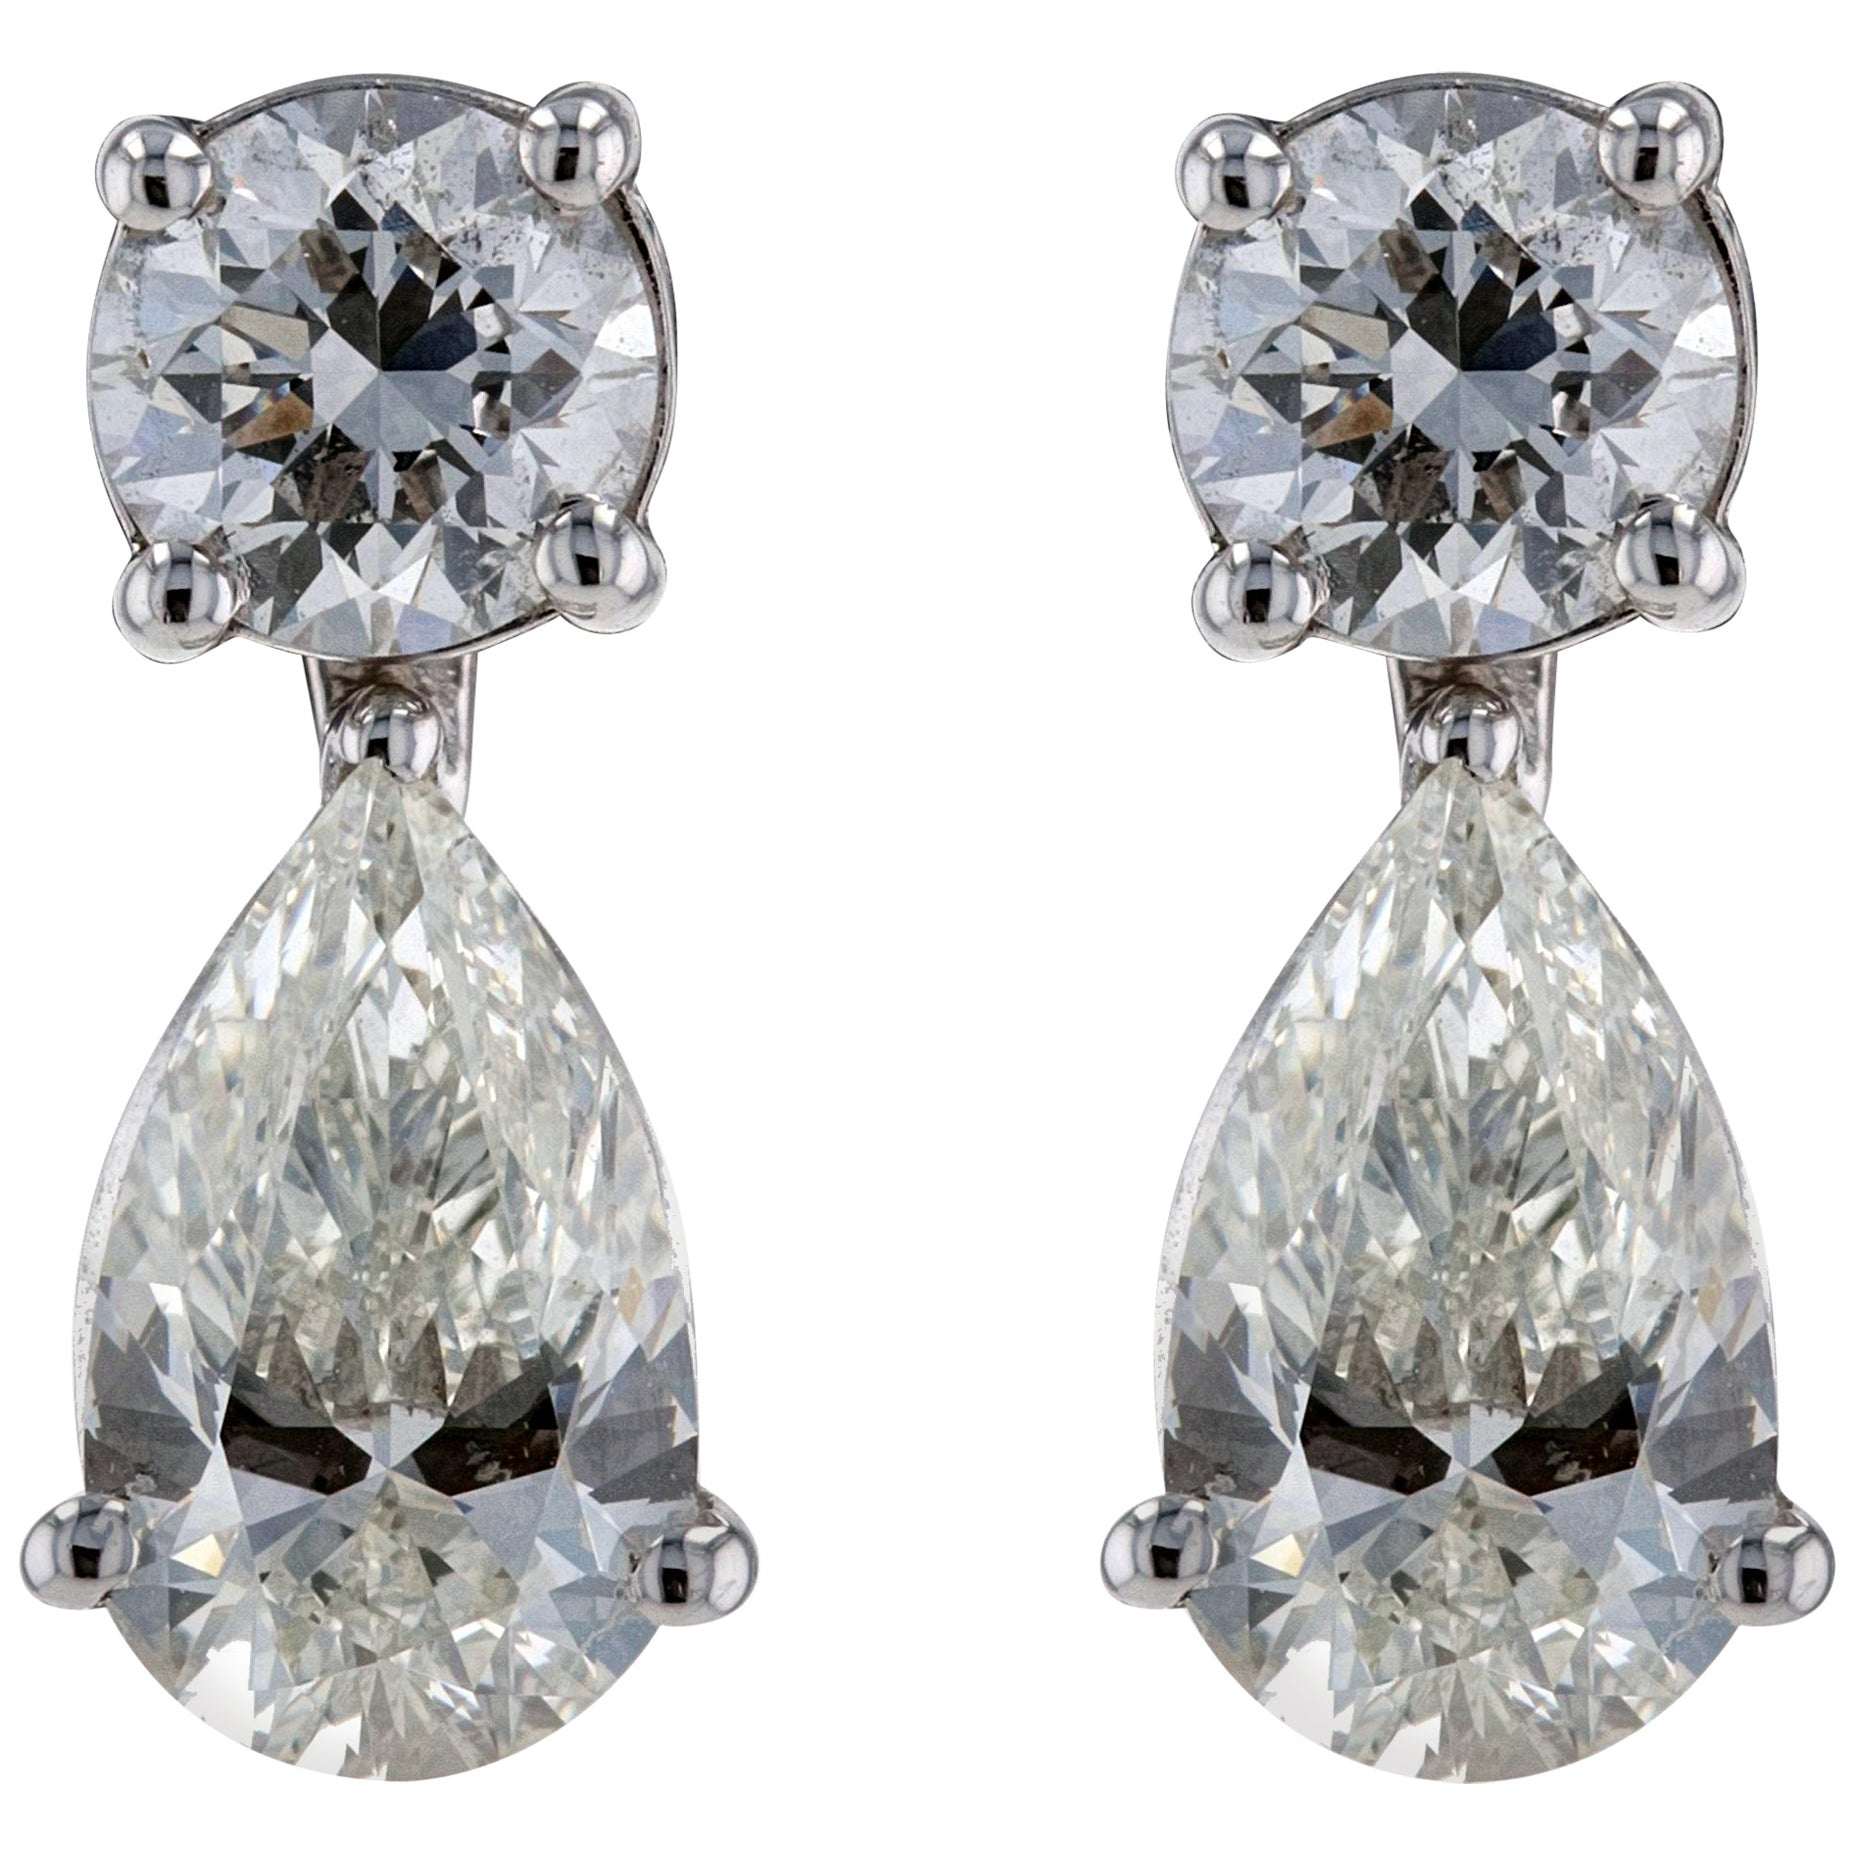 Amwaj Jewelry White Diamonds Earrings in 18 Karat White Gold